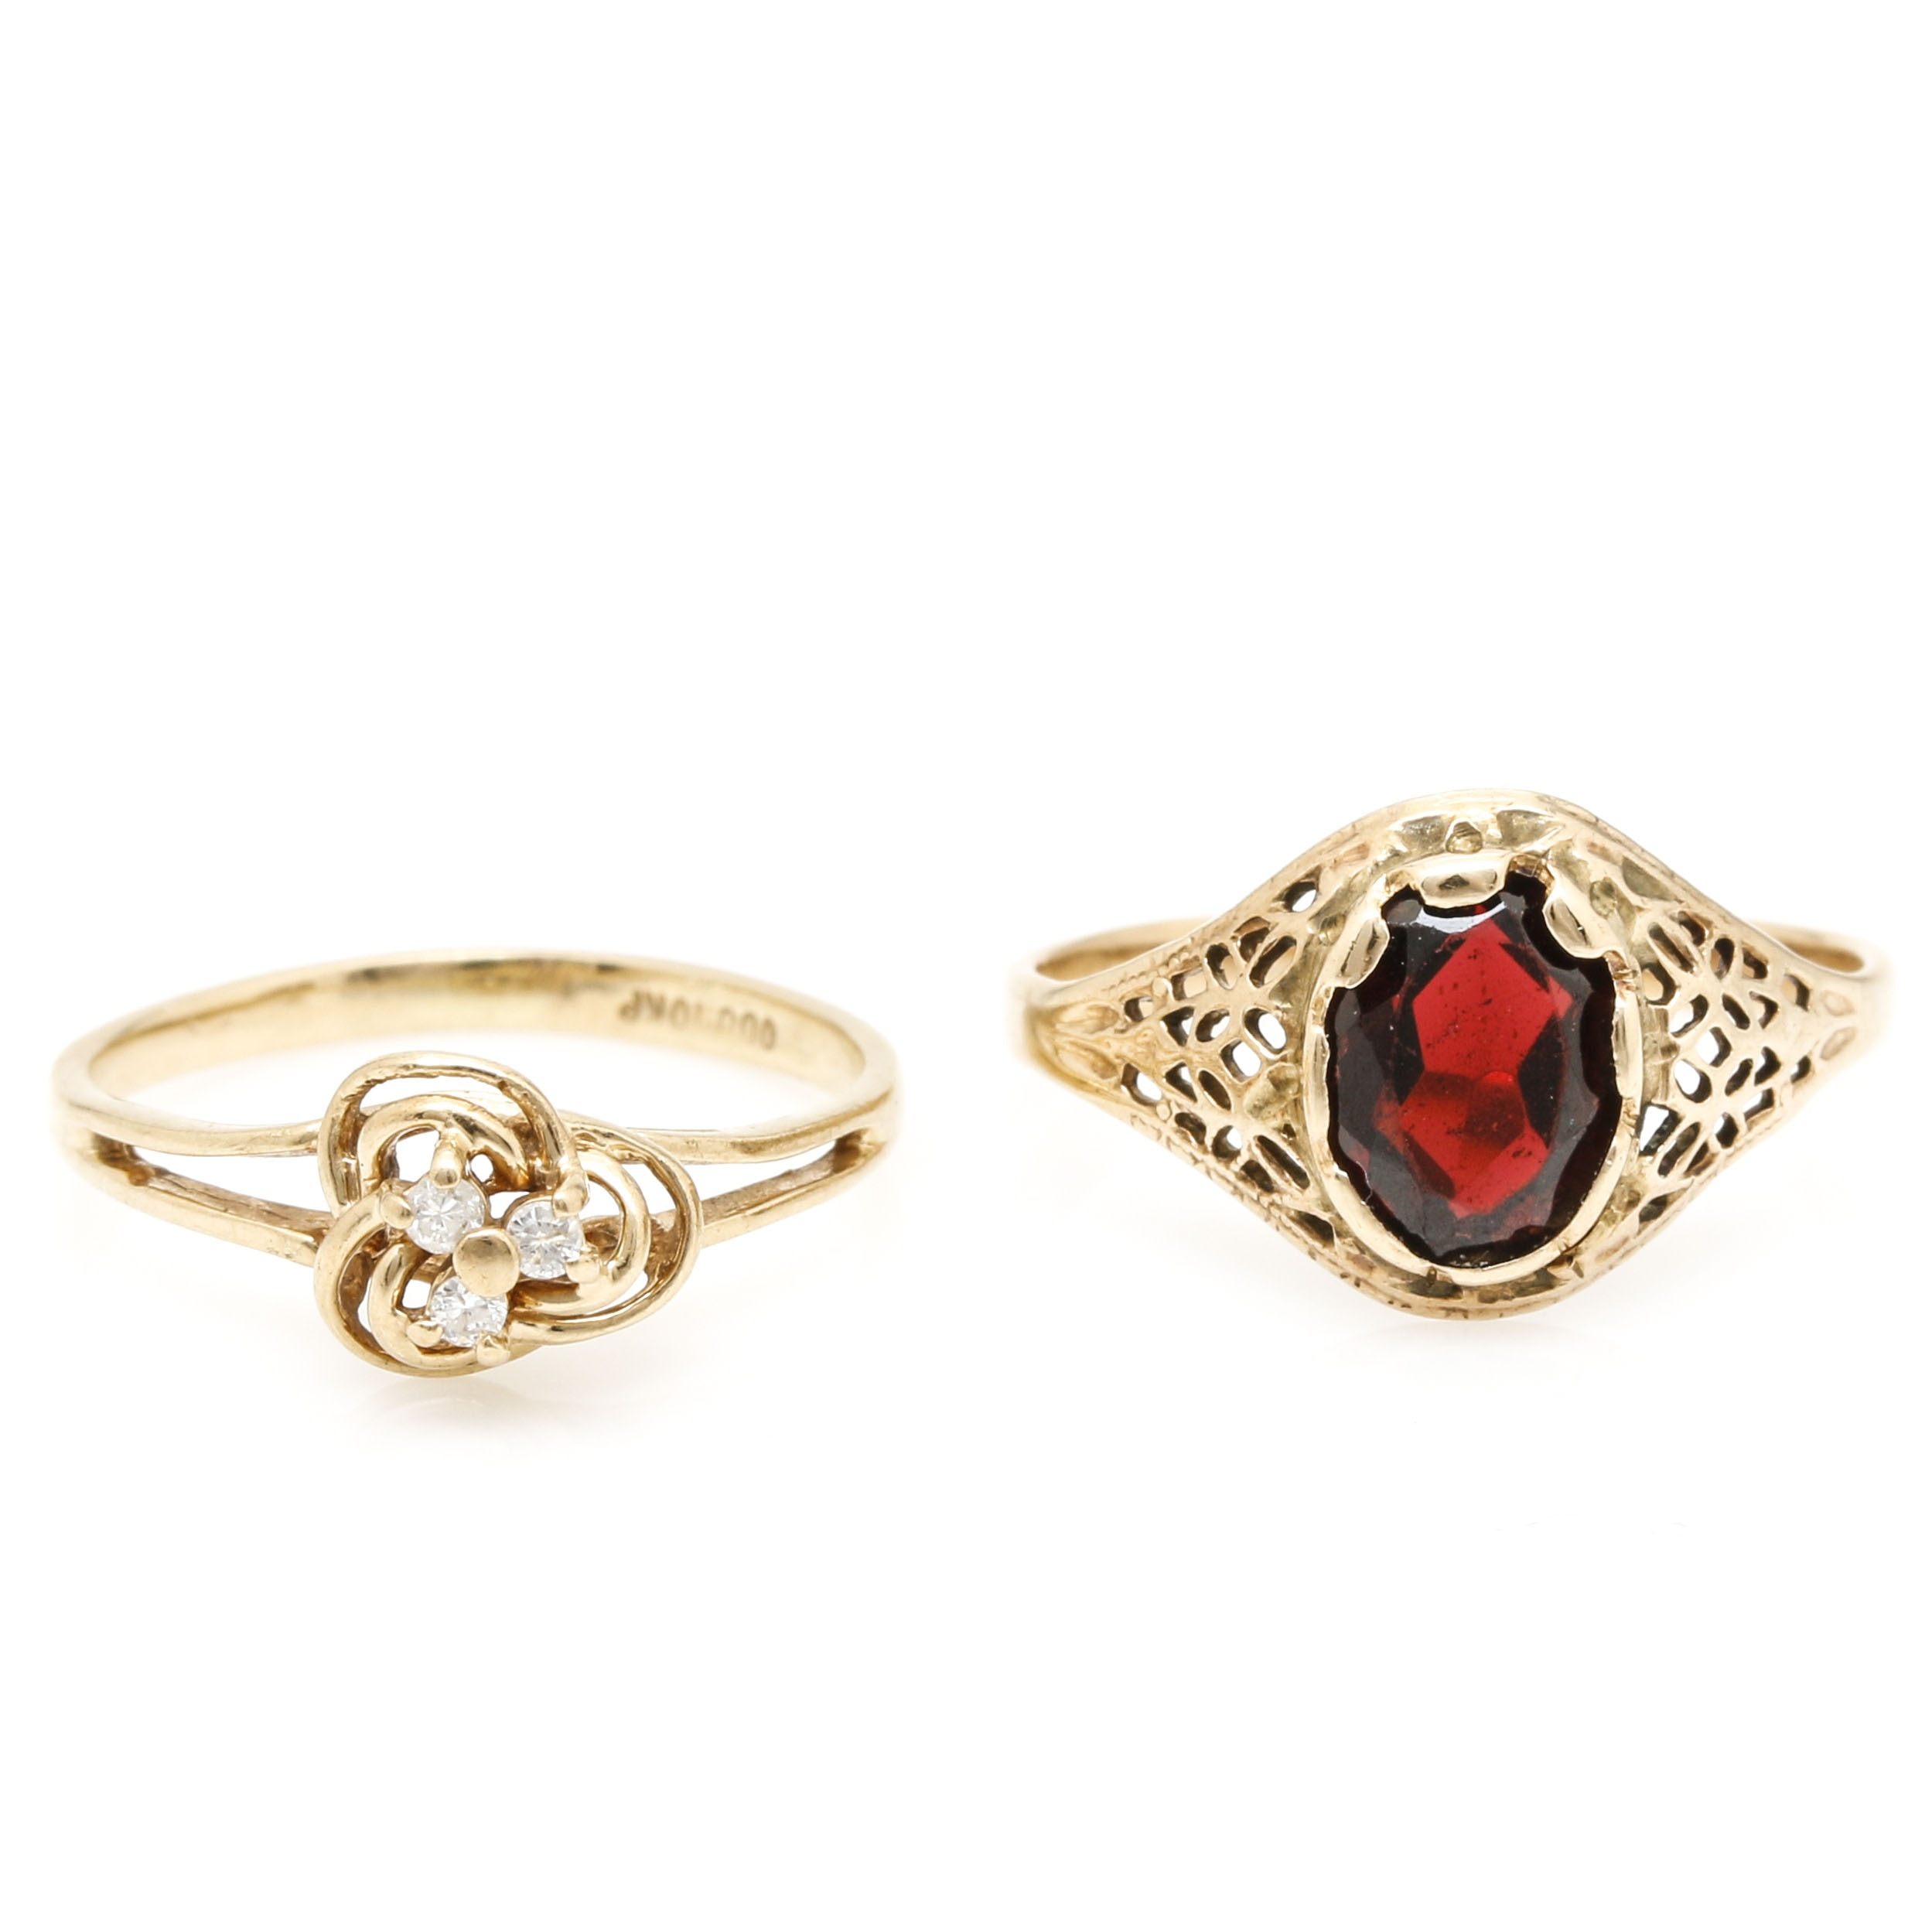 Assorted 10K Yellow Gold Garnet and Diamond Rings